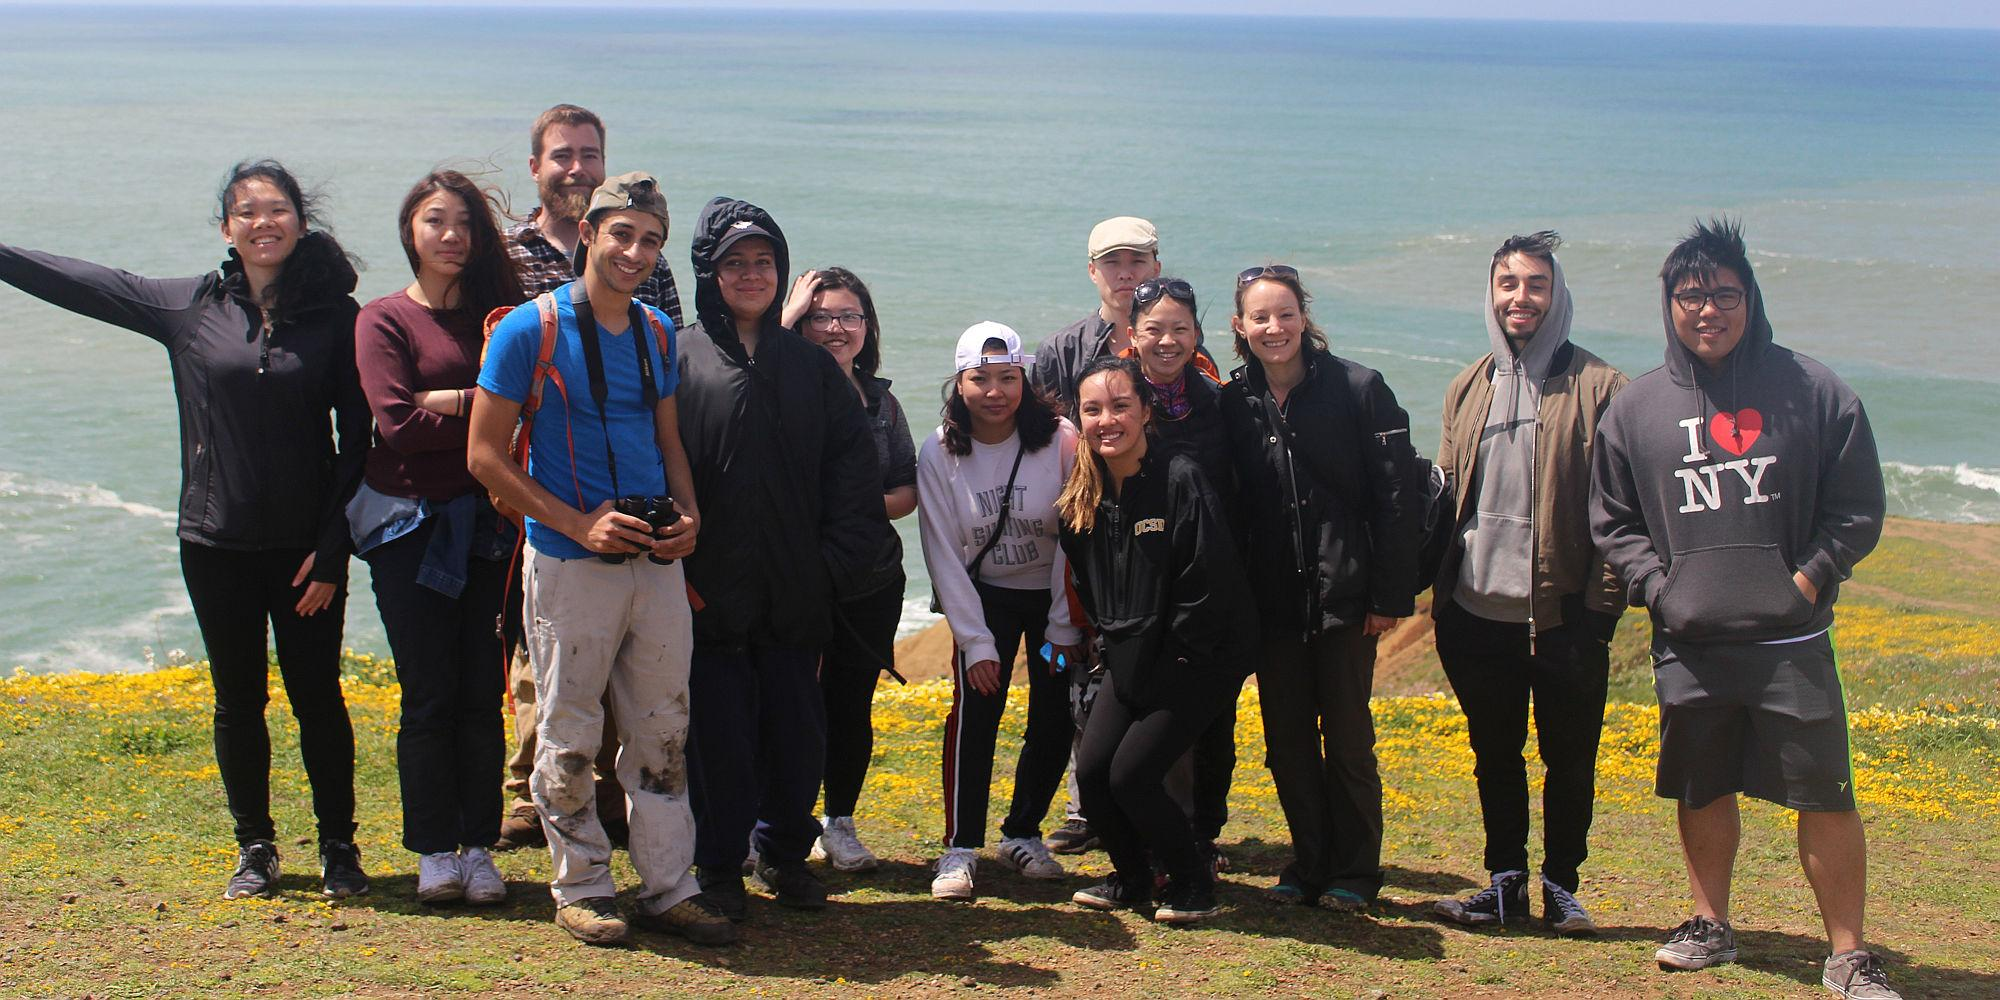 City College of San Francisco students enjoy the wildflowers and sweeping views at Mori Point at the end of a fun program weeding